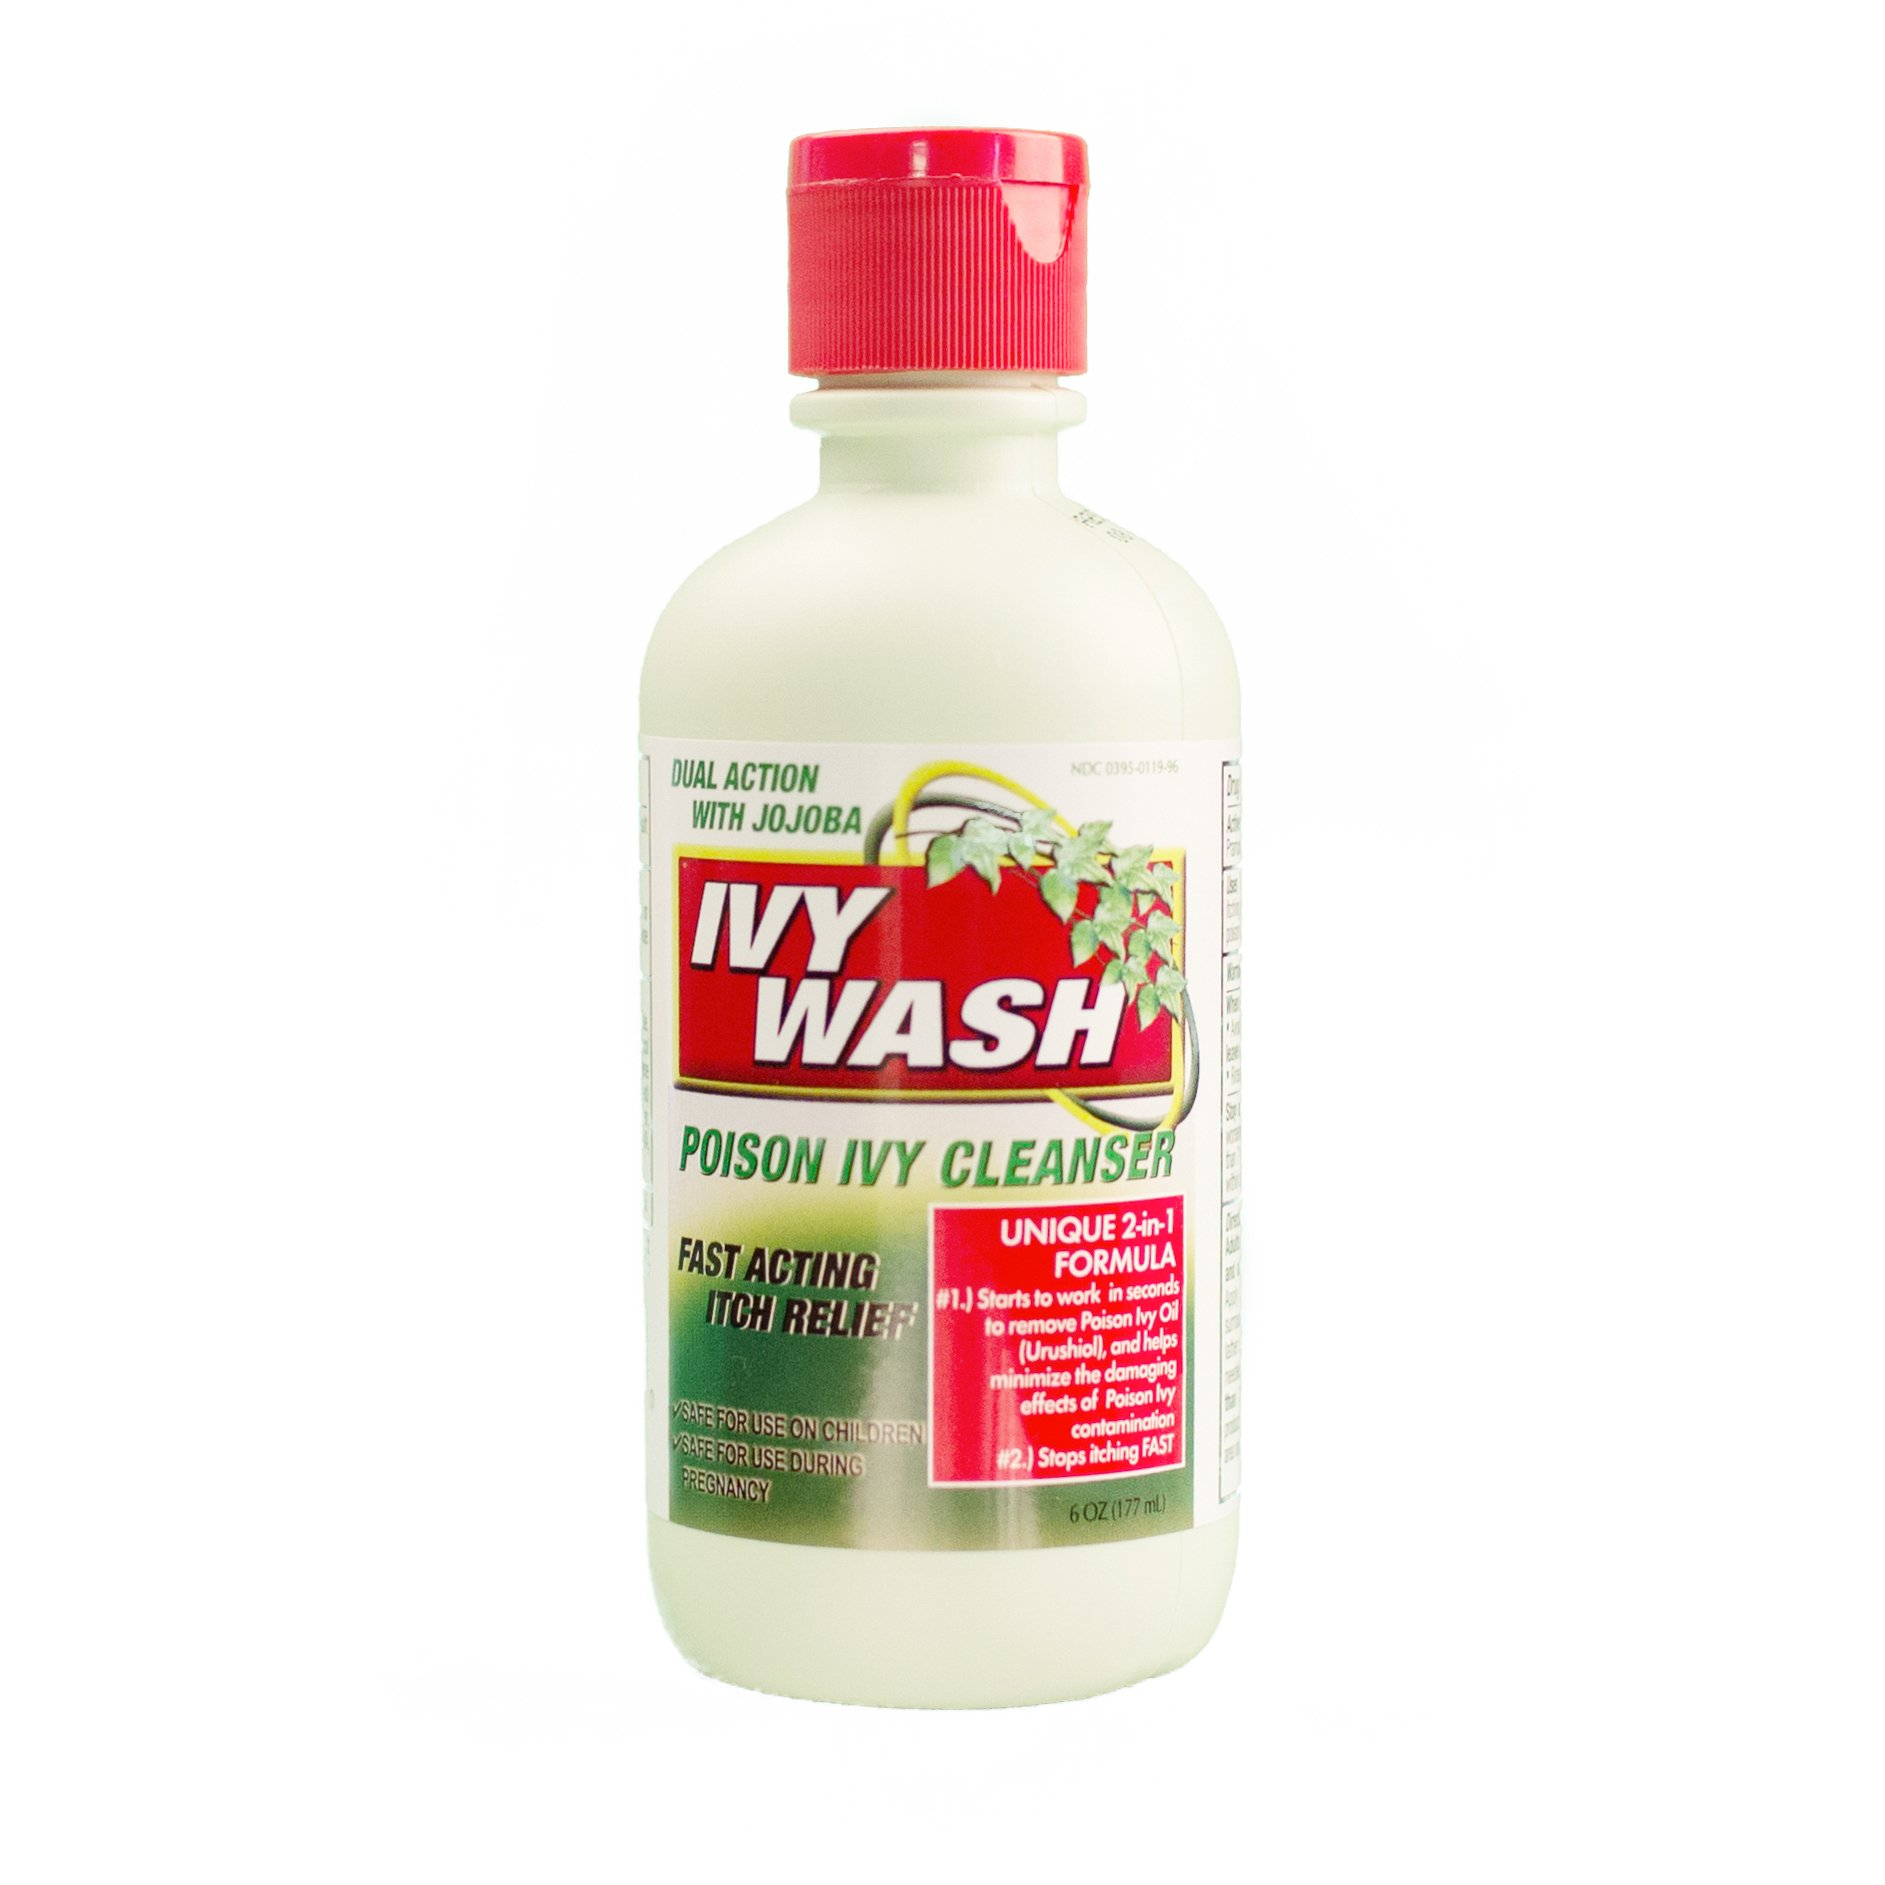 Ivy Wash - Poison Ivy Cleanser, 6 oz. by Humco